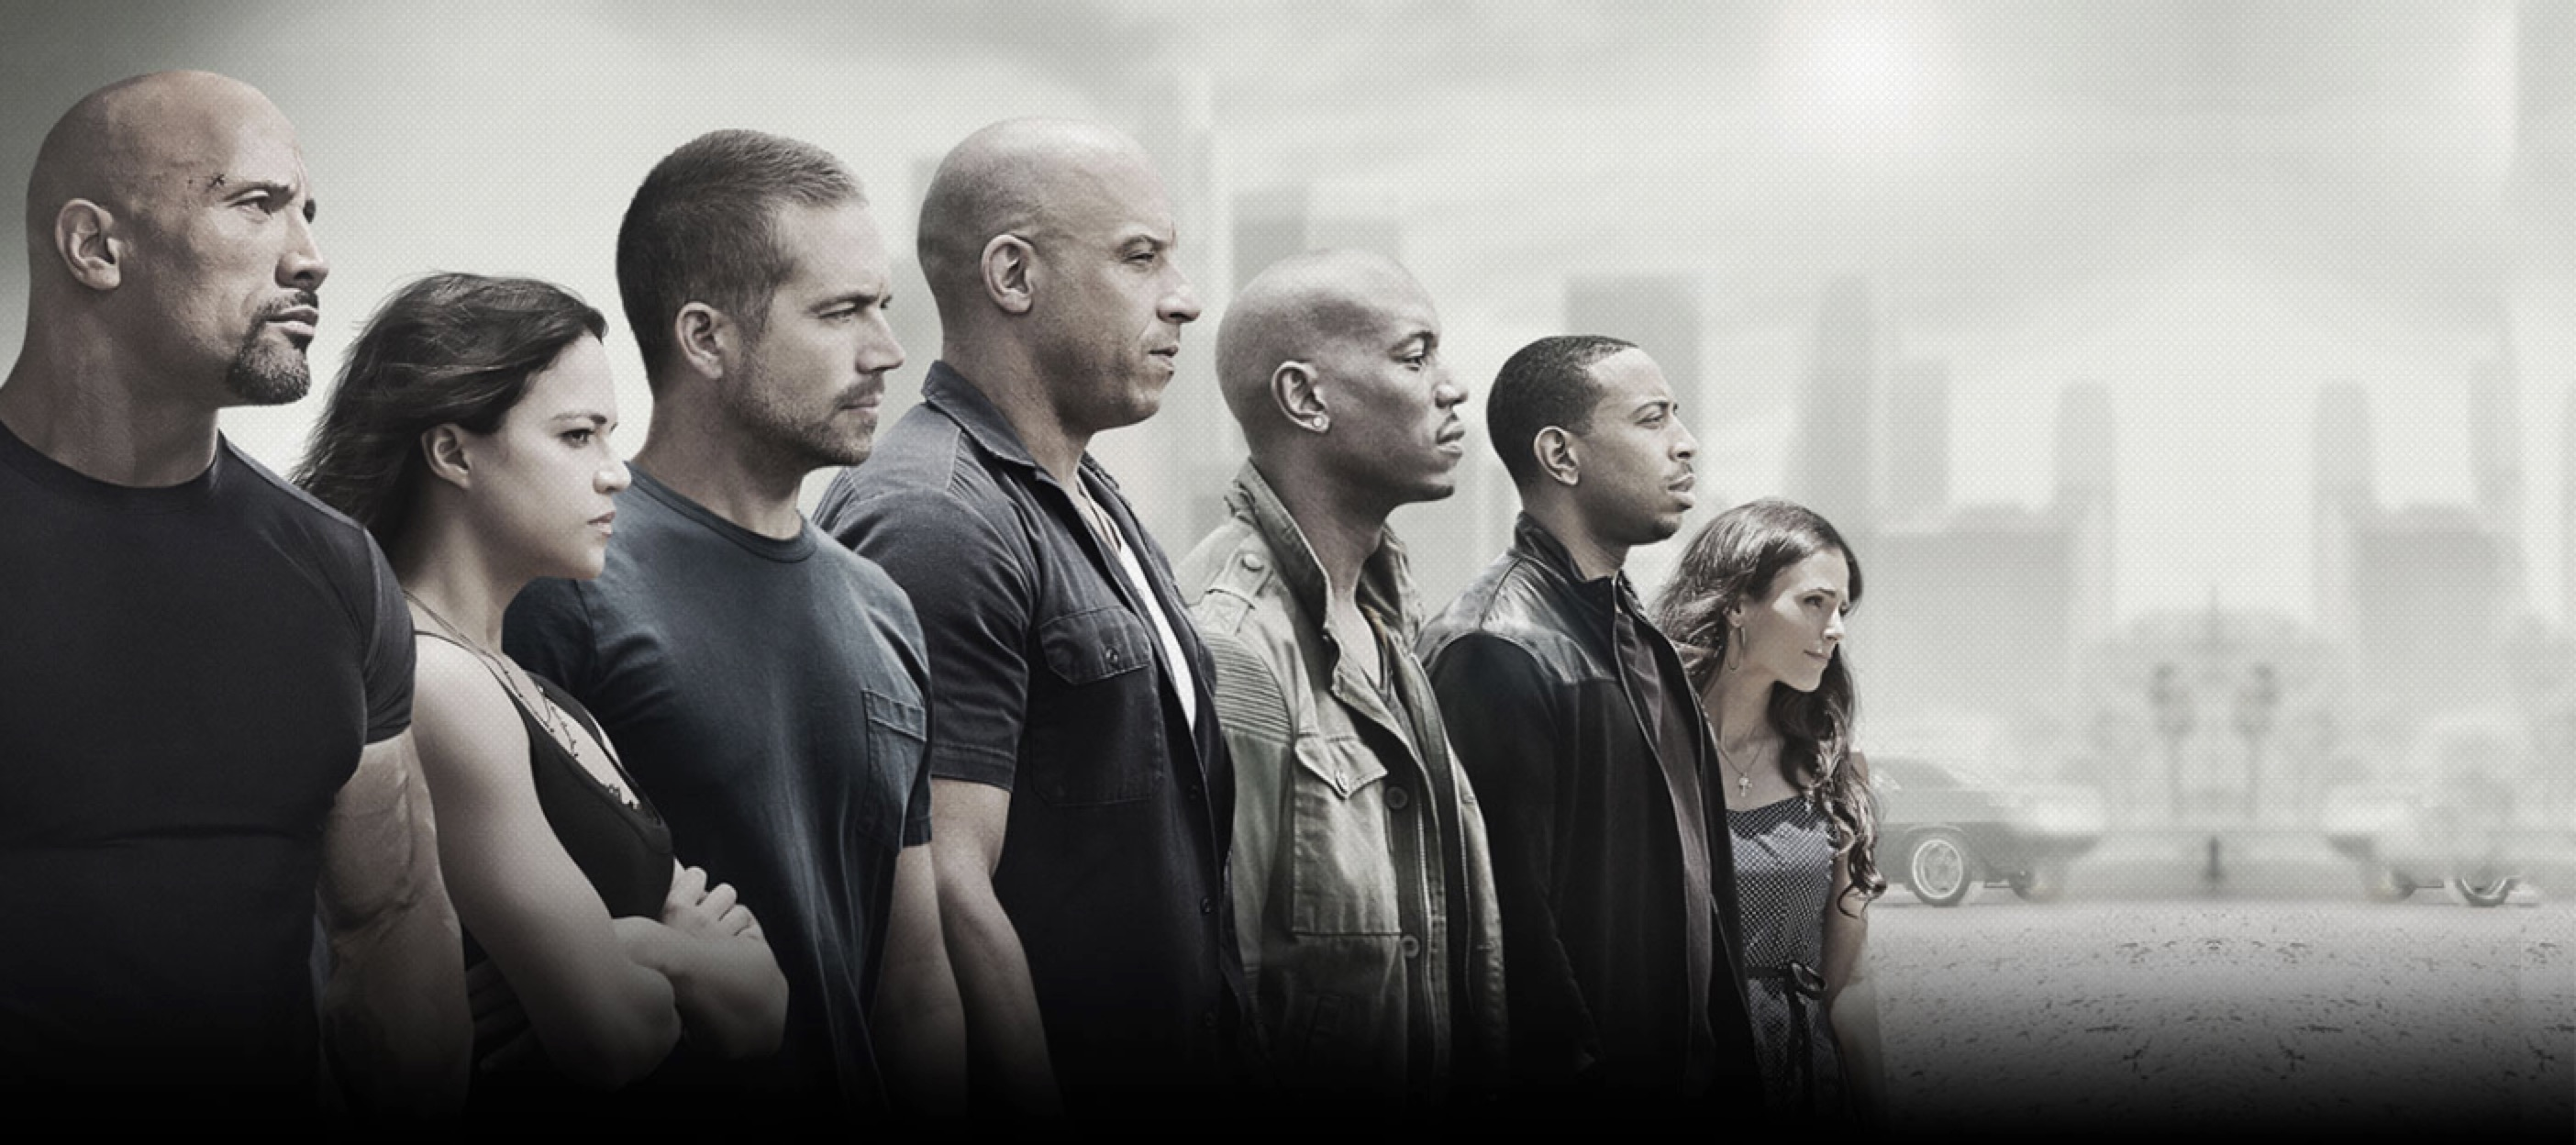 Release date for fast and furious 7 in Australia